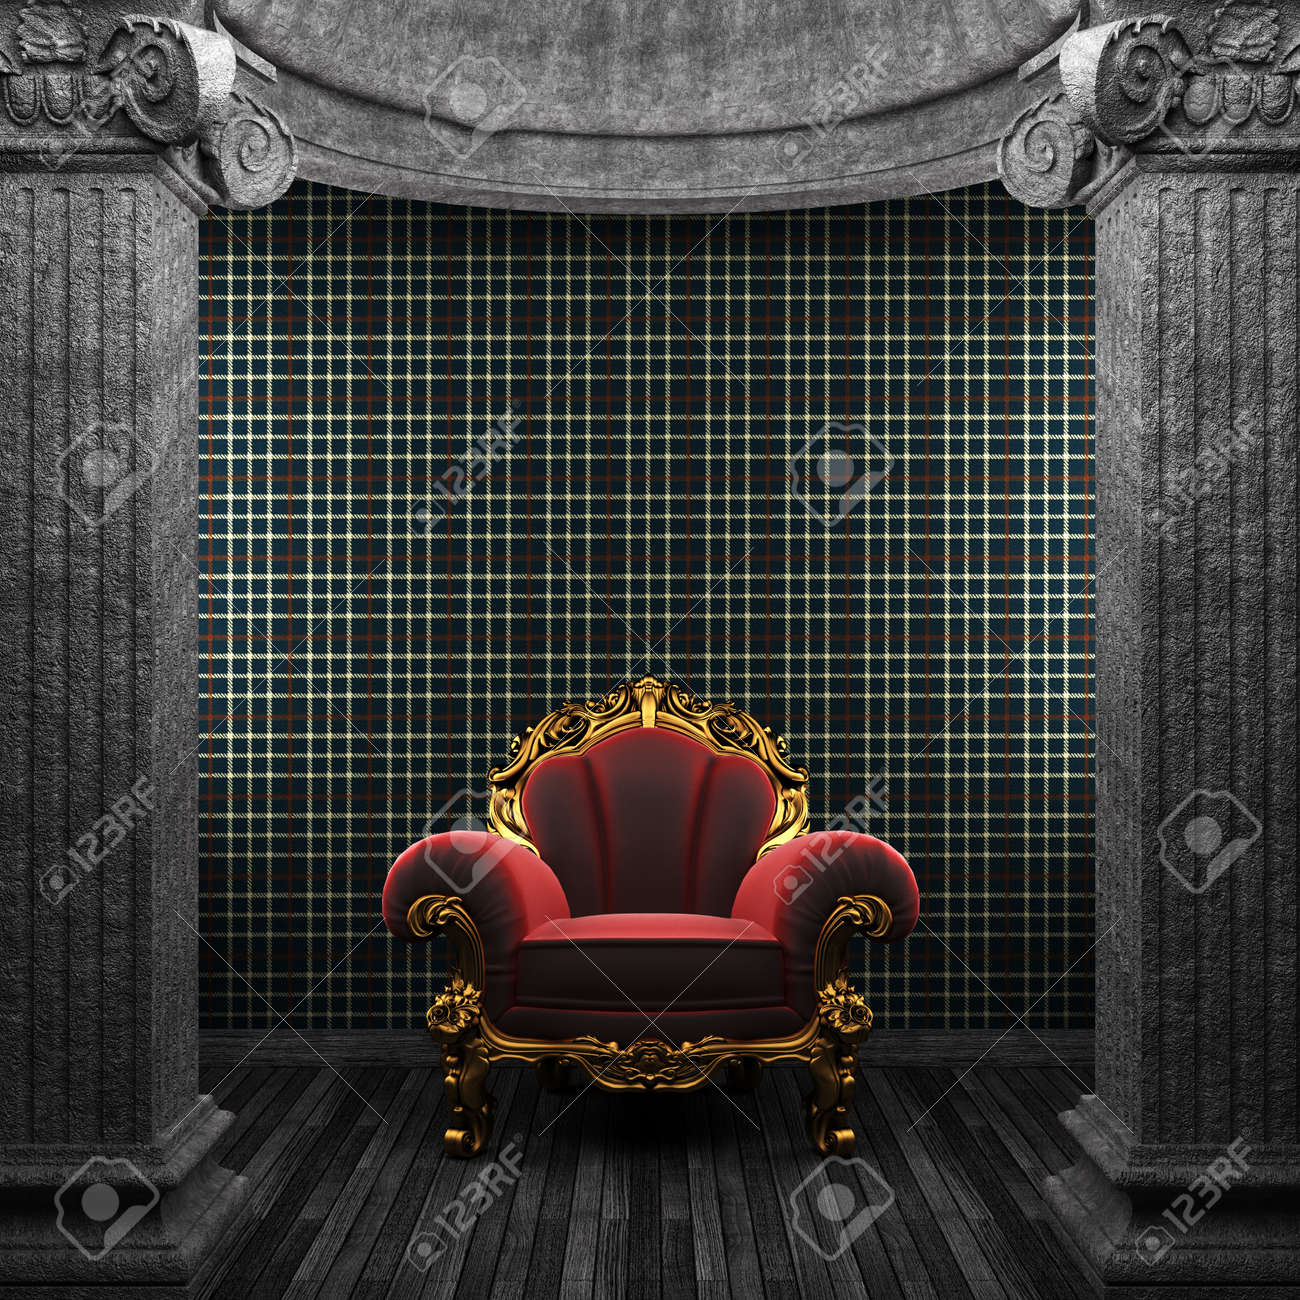 stone columns, chair and wallpaper made in 3D Stock Photo - 8455842